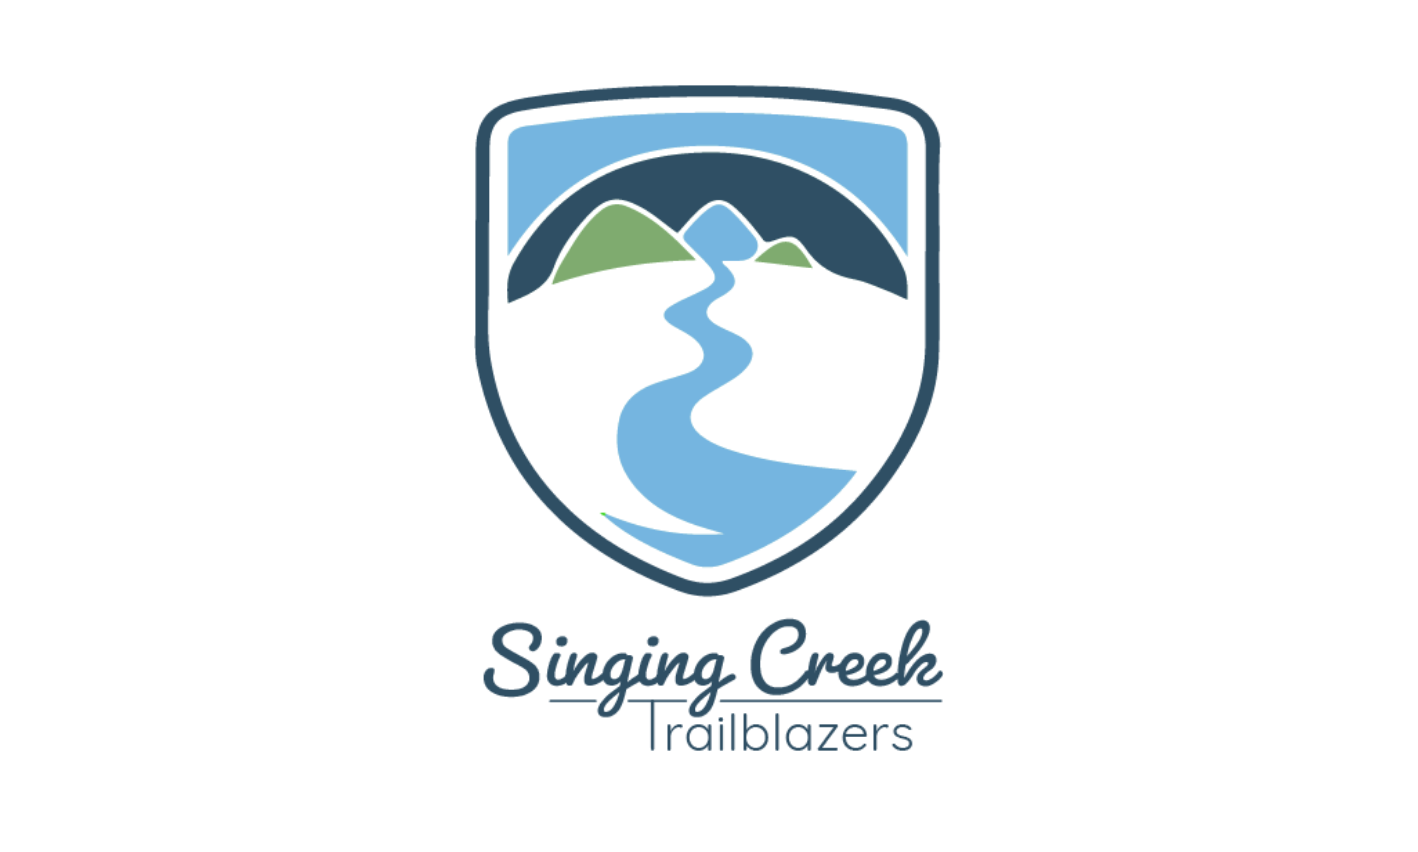 Singing Creek Trailblazers